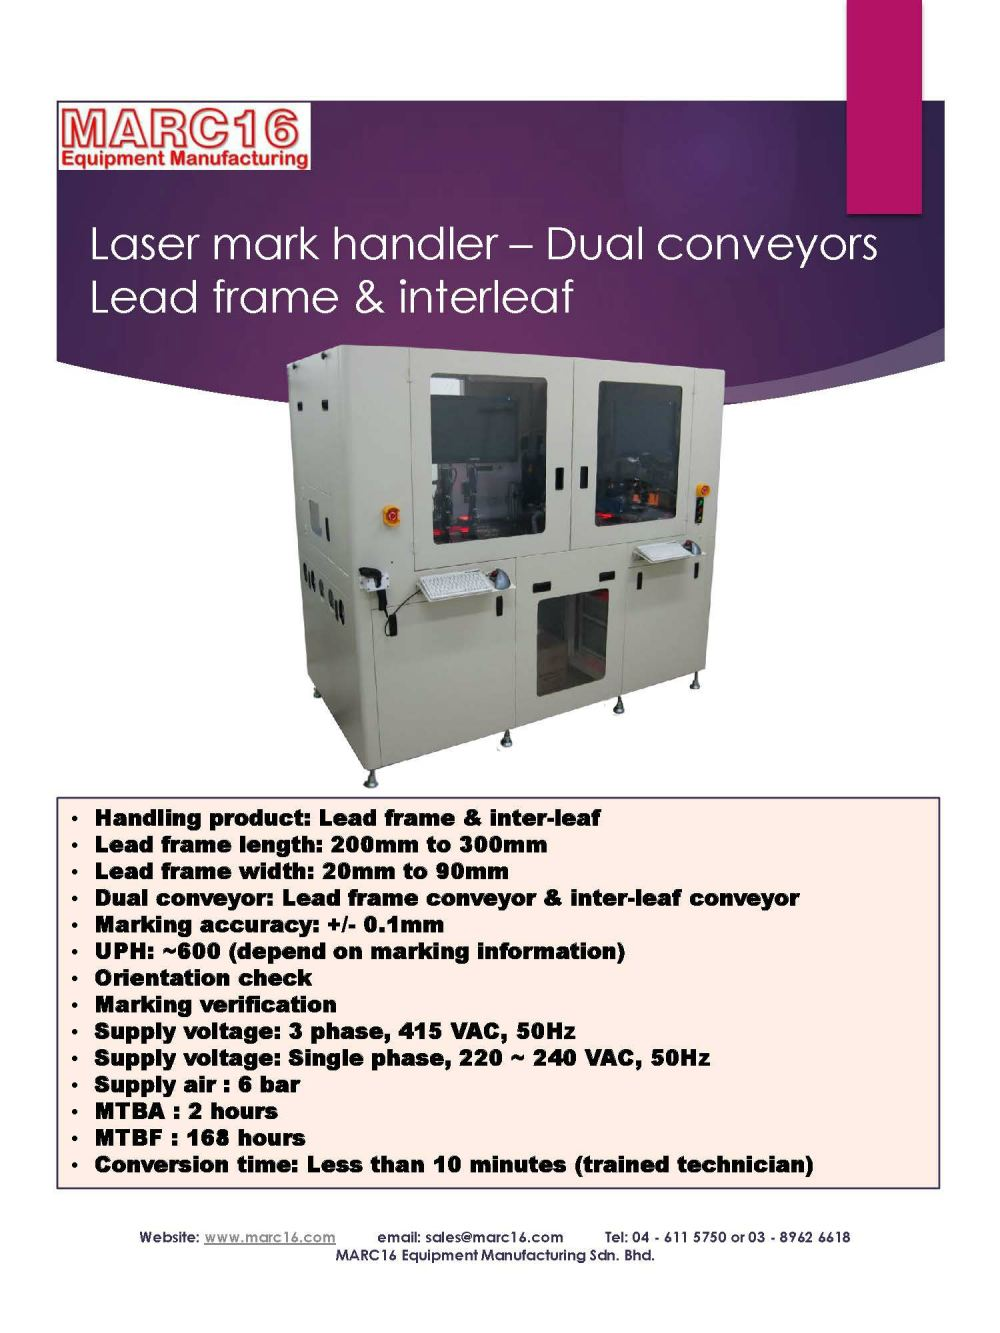 Laser mark handler - Leadframe - Dual conveyors